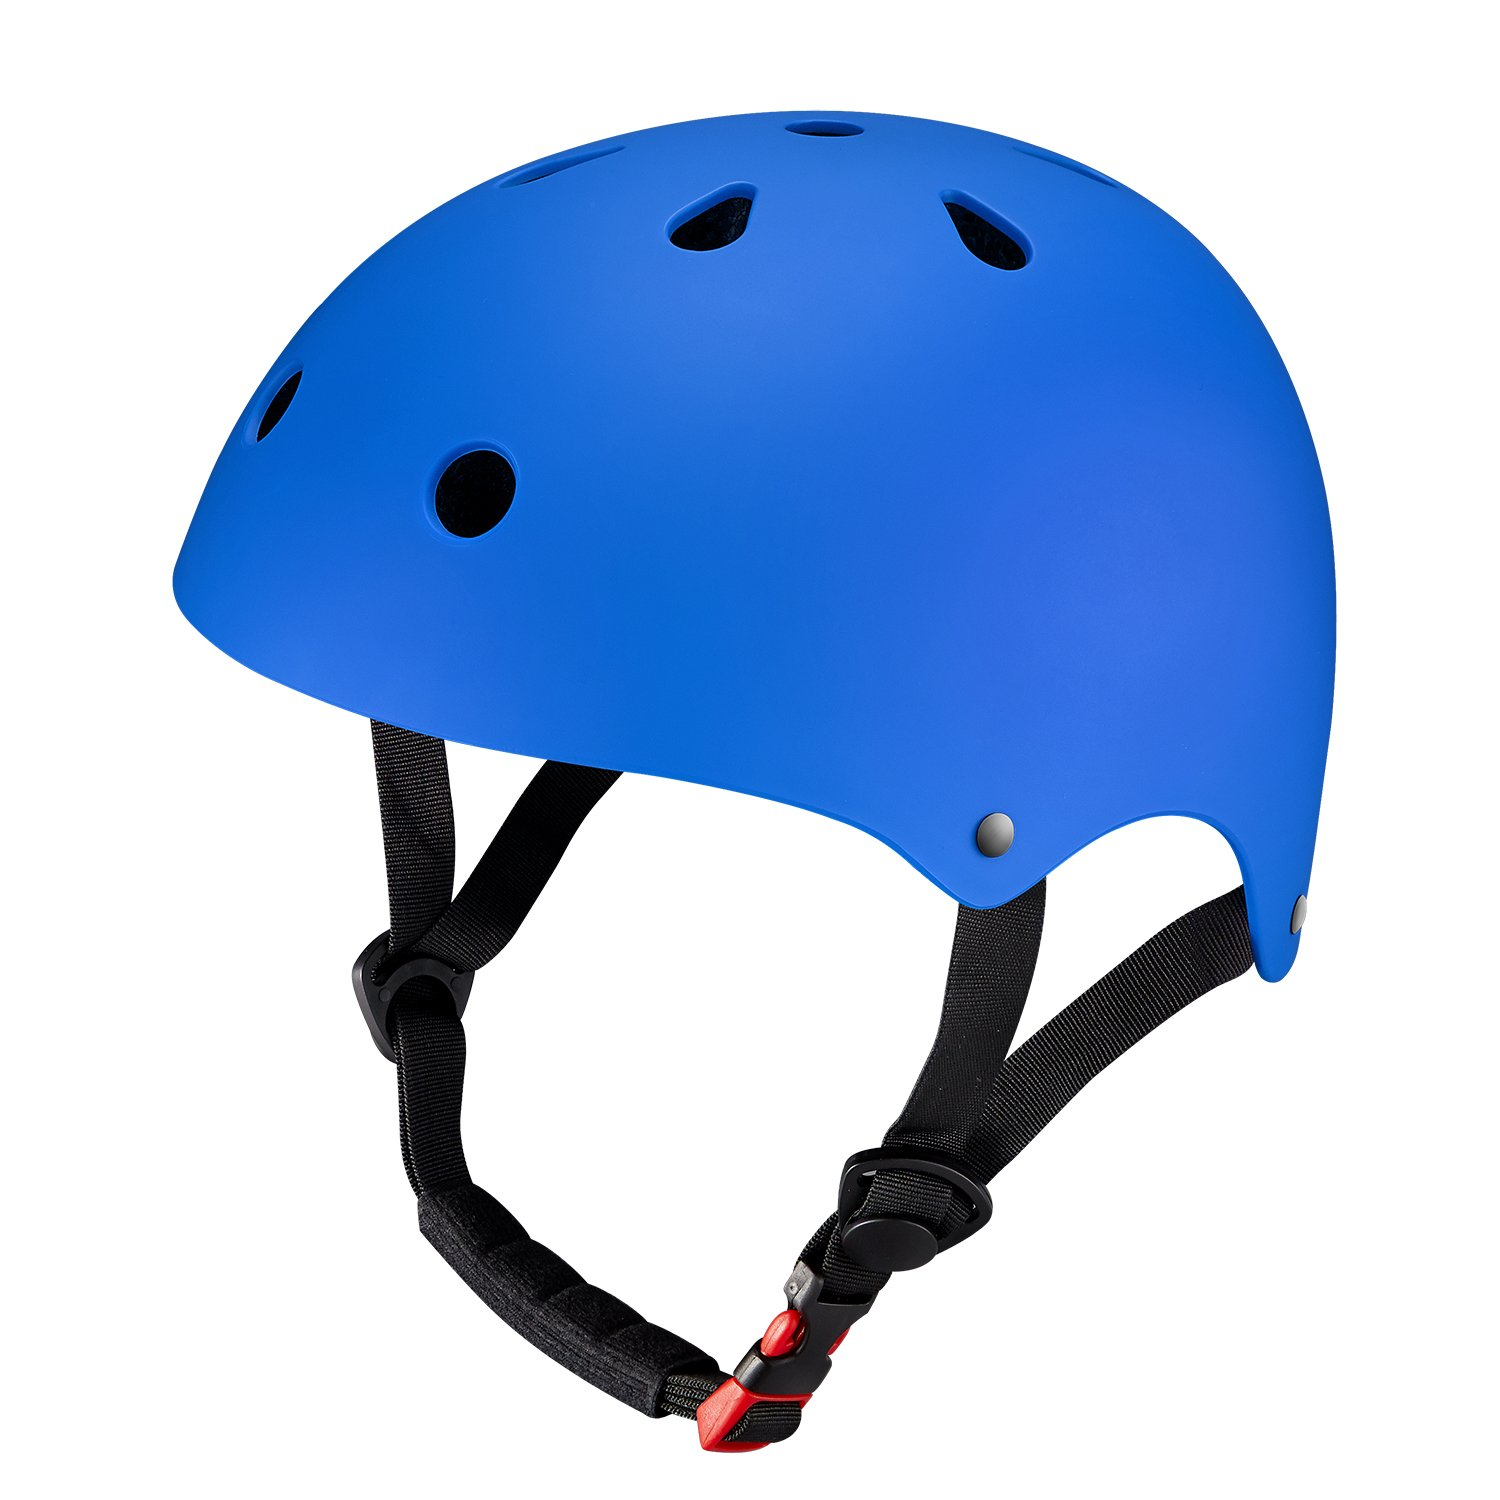 KuYou Youth Skateboarding Helmet,Ultimate Adjustable ABS Shell for Cycling /Skateboard/Scooter/ Skate Inline Skating /Rollerblading Protective Gear Suitable Men /Women.(M Blue)